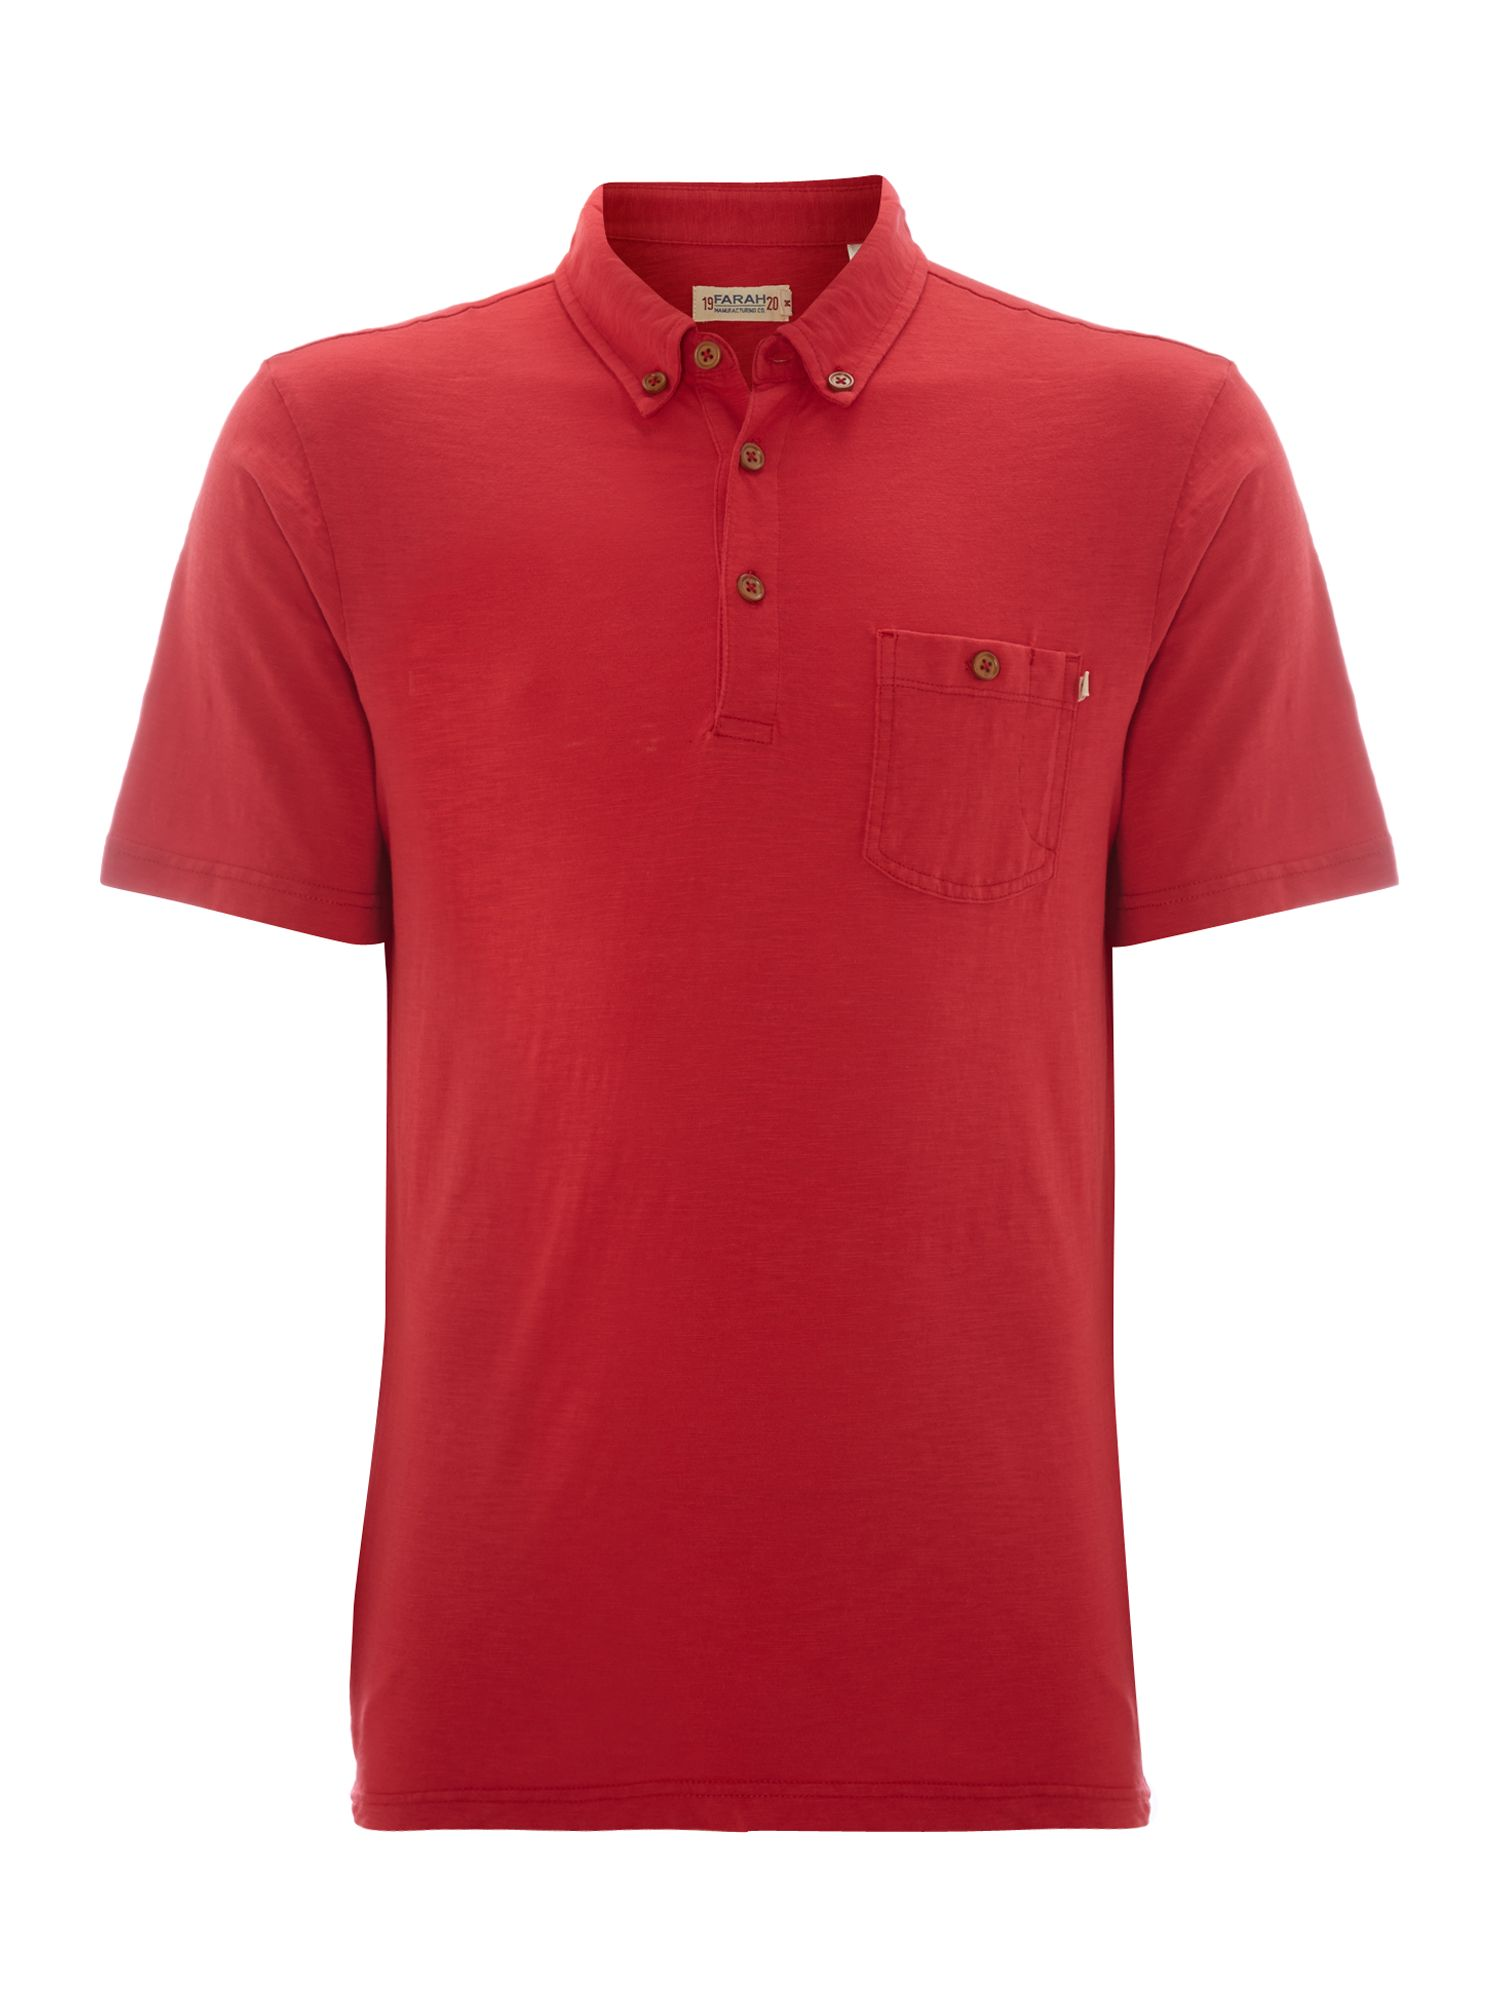 Button down collar one pocket stapleford polo